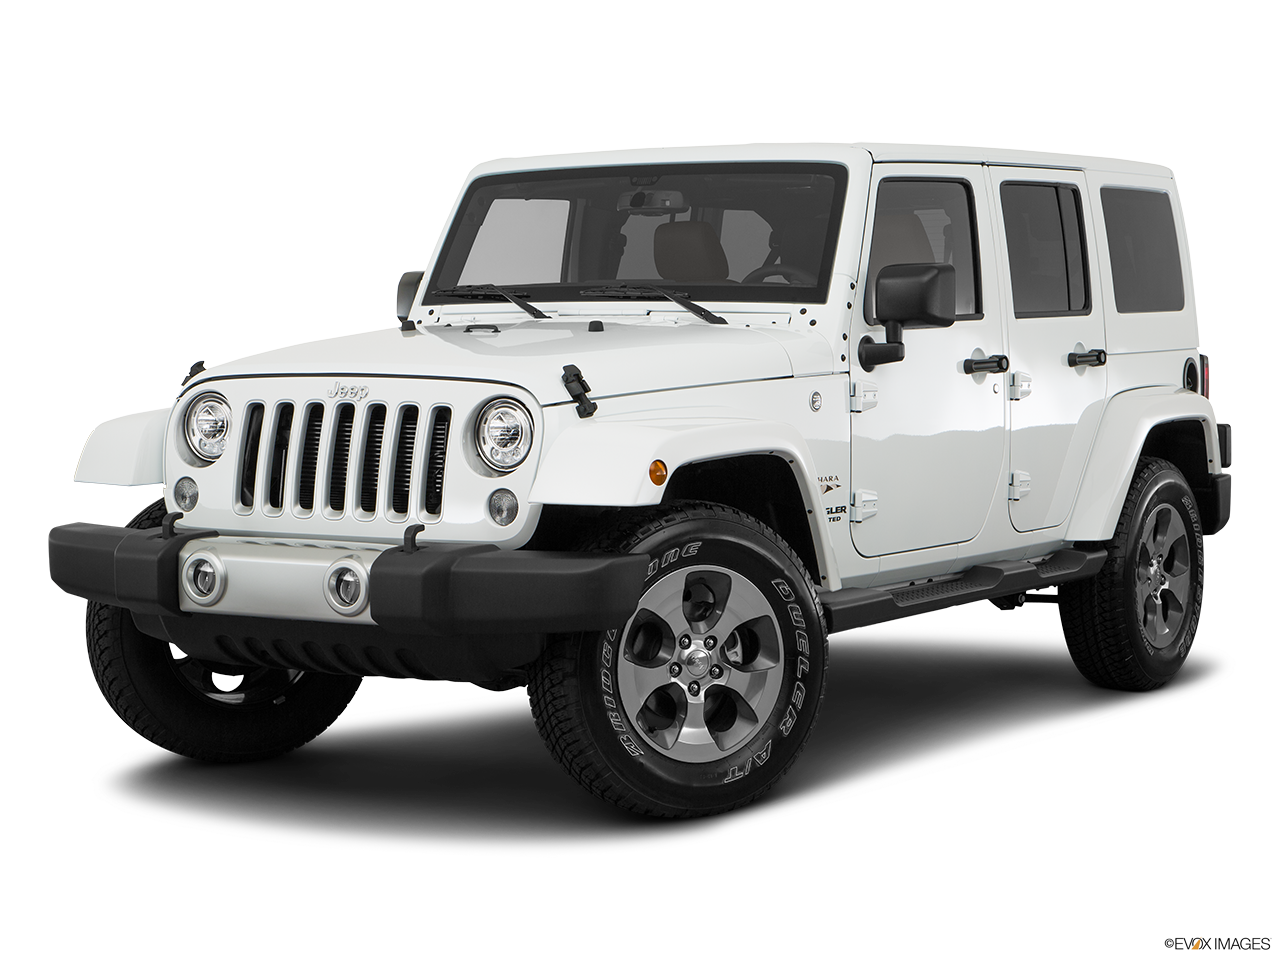 Test Drive A 2017 Jeep Wrangler Unlimited at Arrigo CDJR West Palm Beach in West Palm Beach